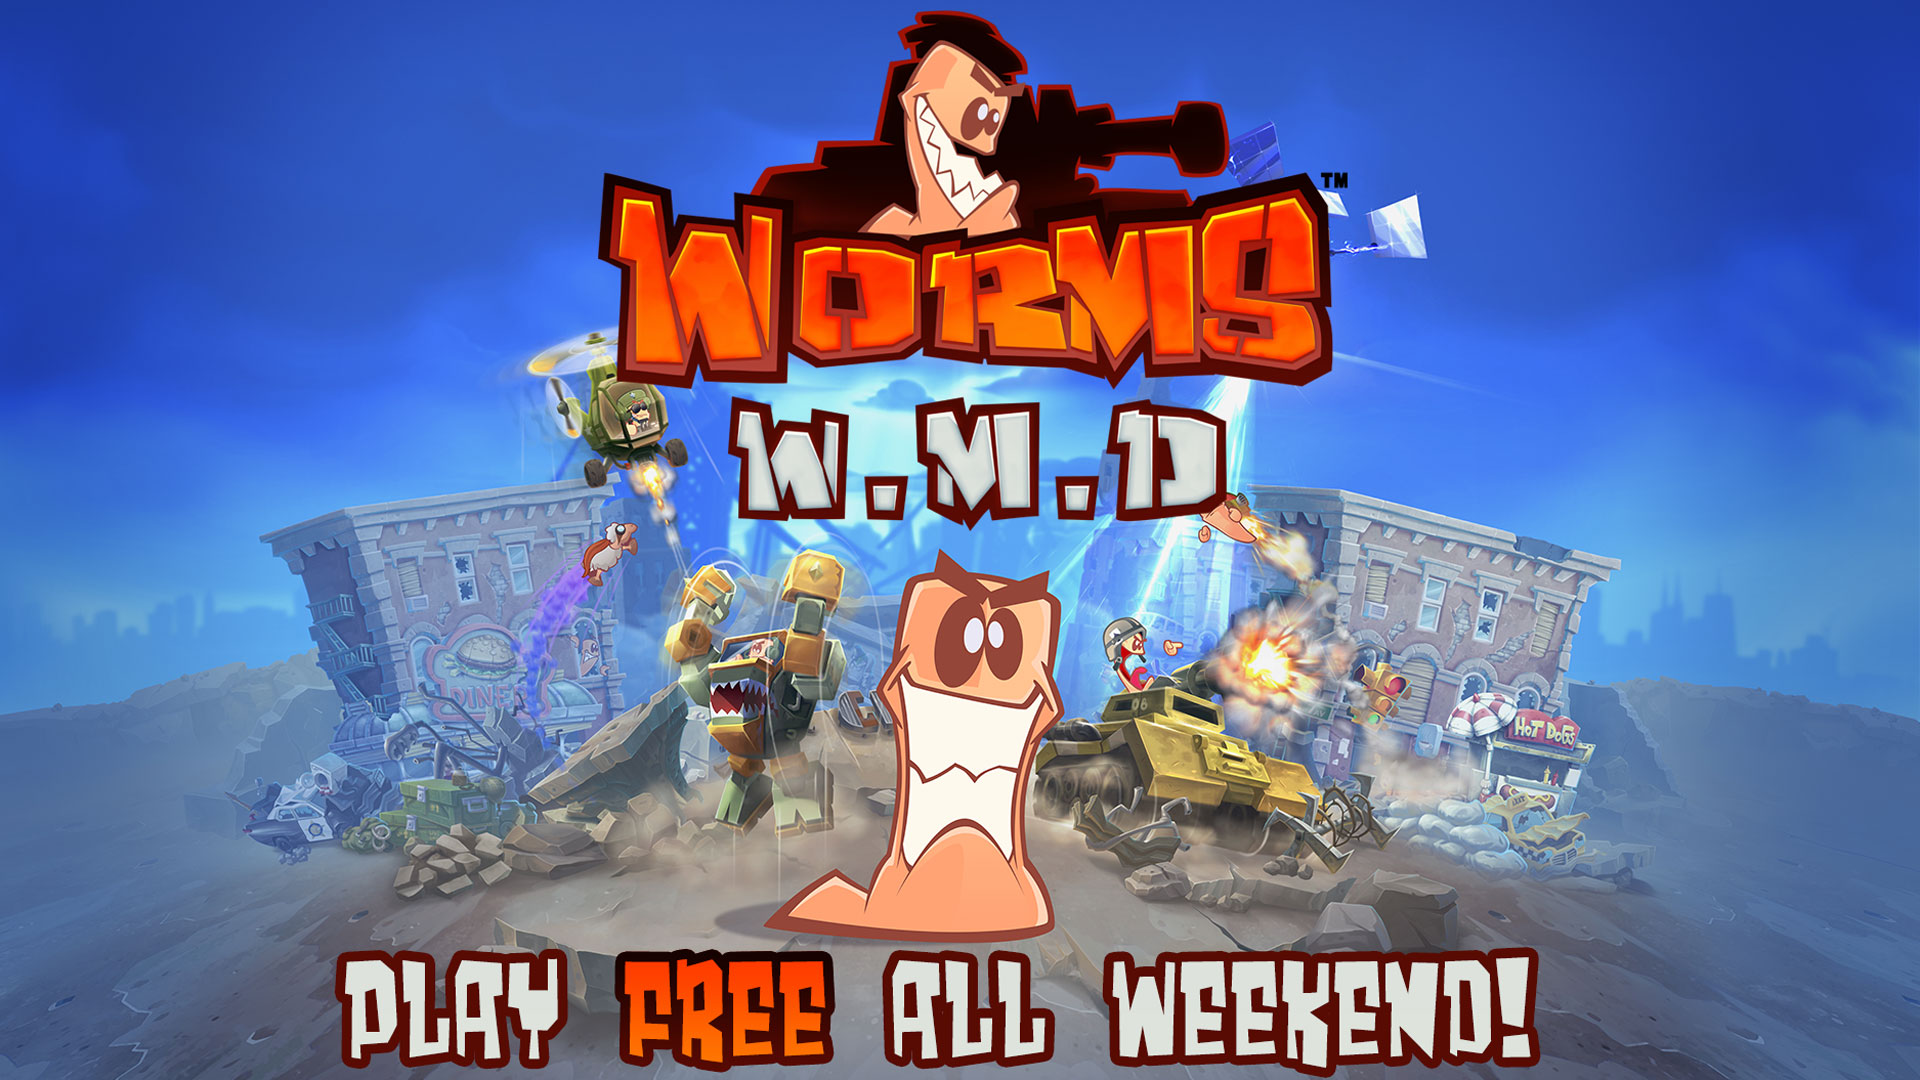 Play Worms W.M.D for FREE this weekend!